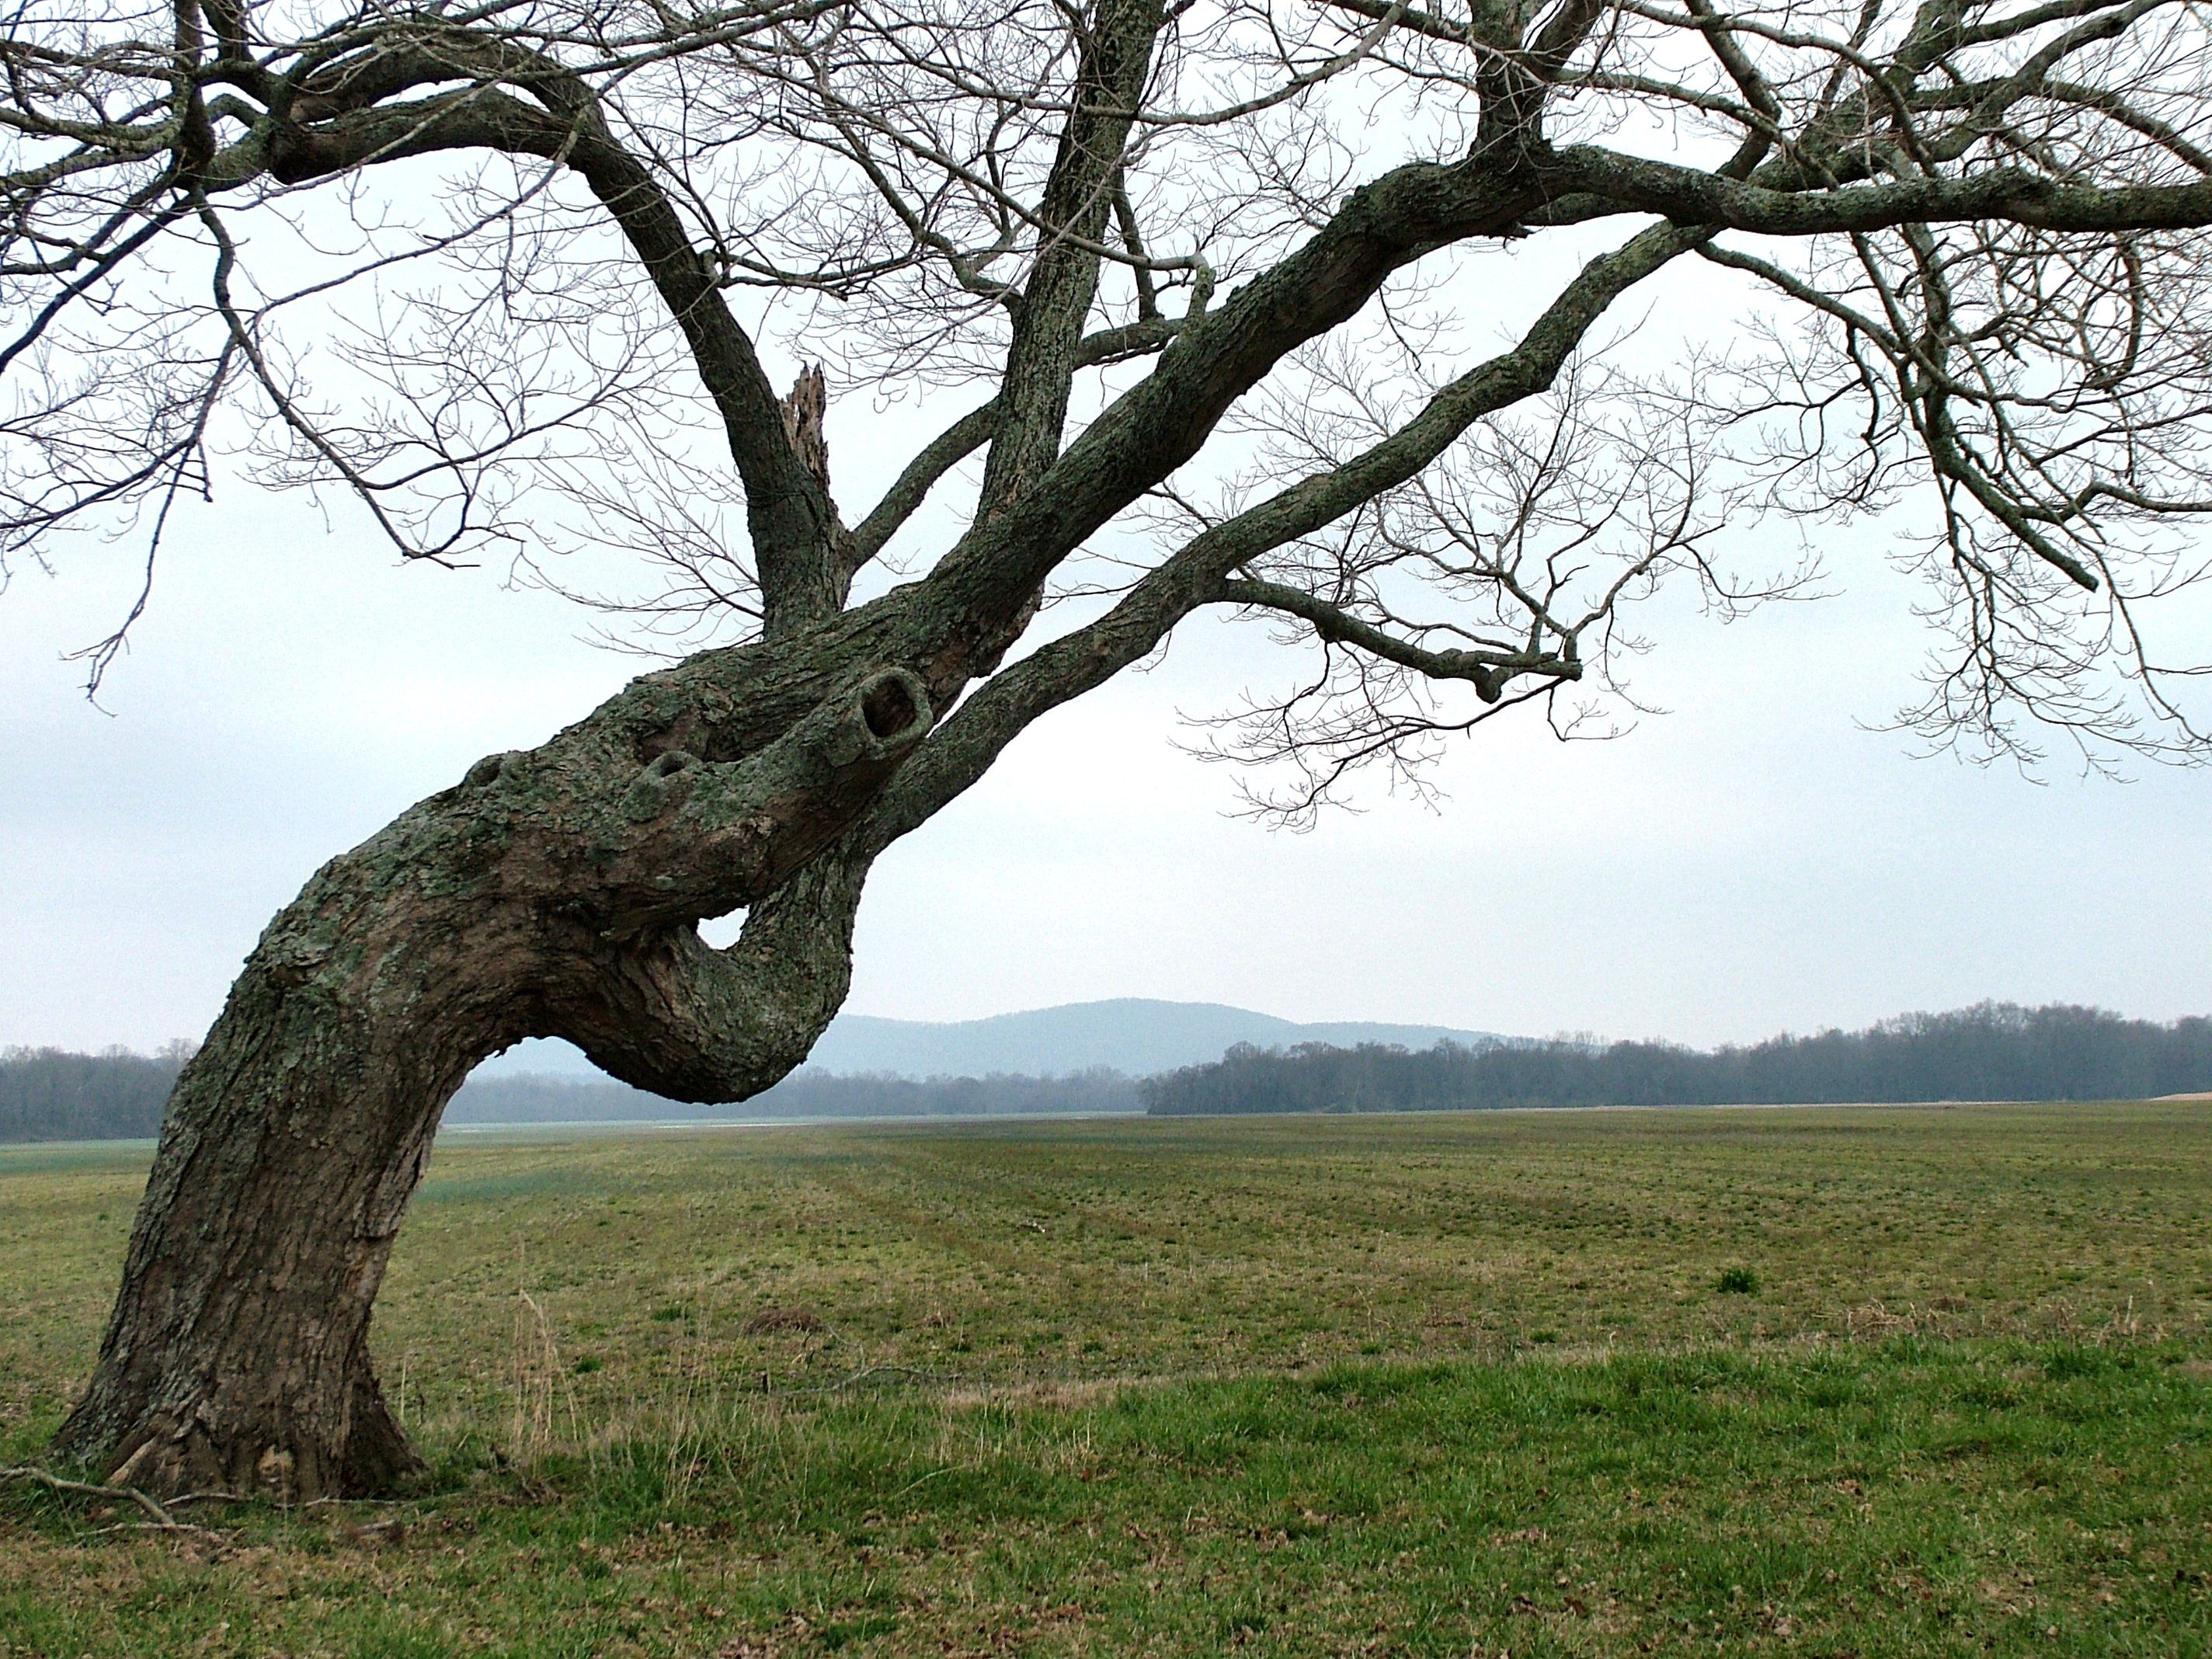 twisted tree trunk - Google Search | Fences Research | Pinterest ...